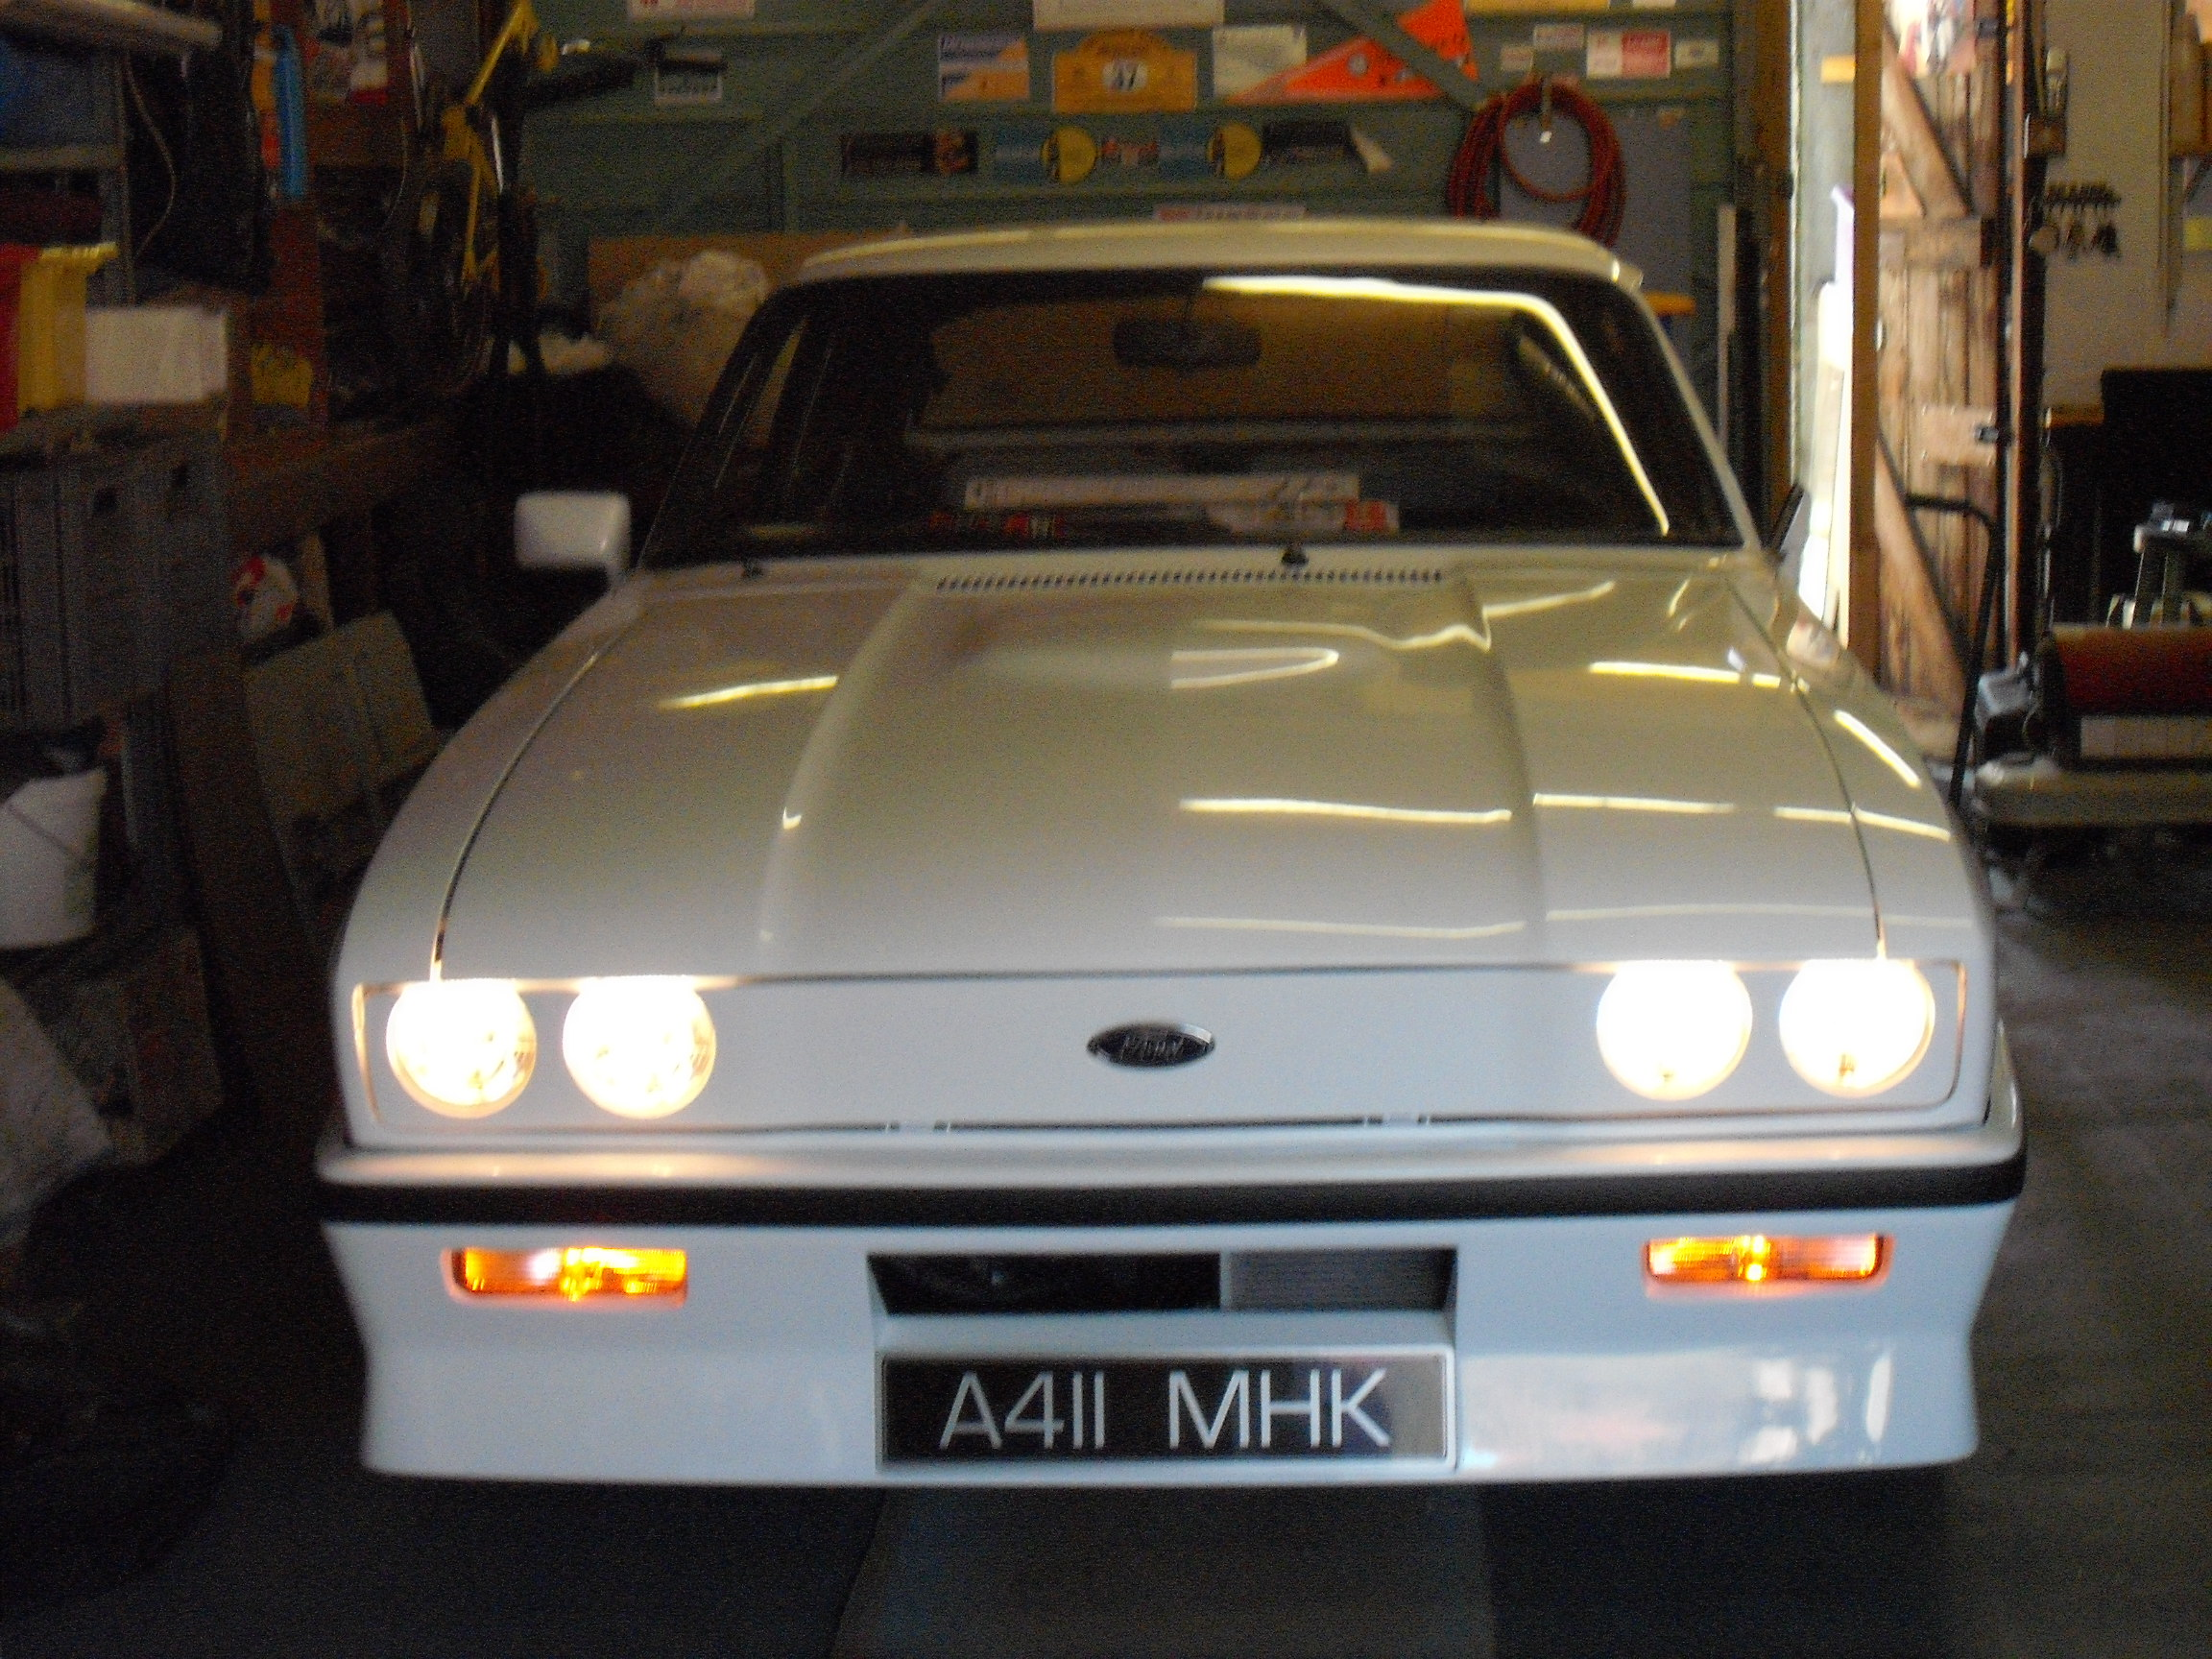 aston martin tickford capri images #5